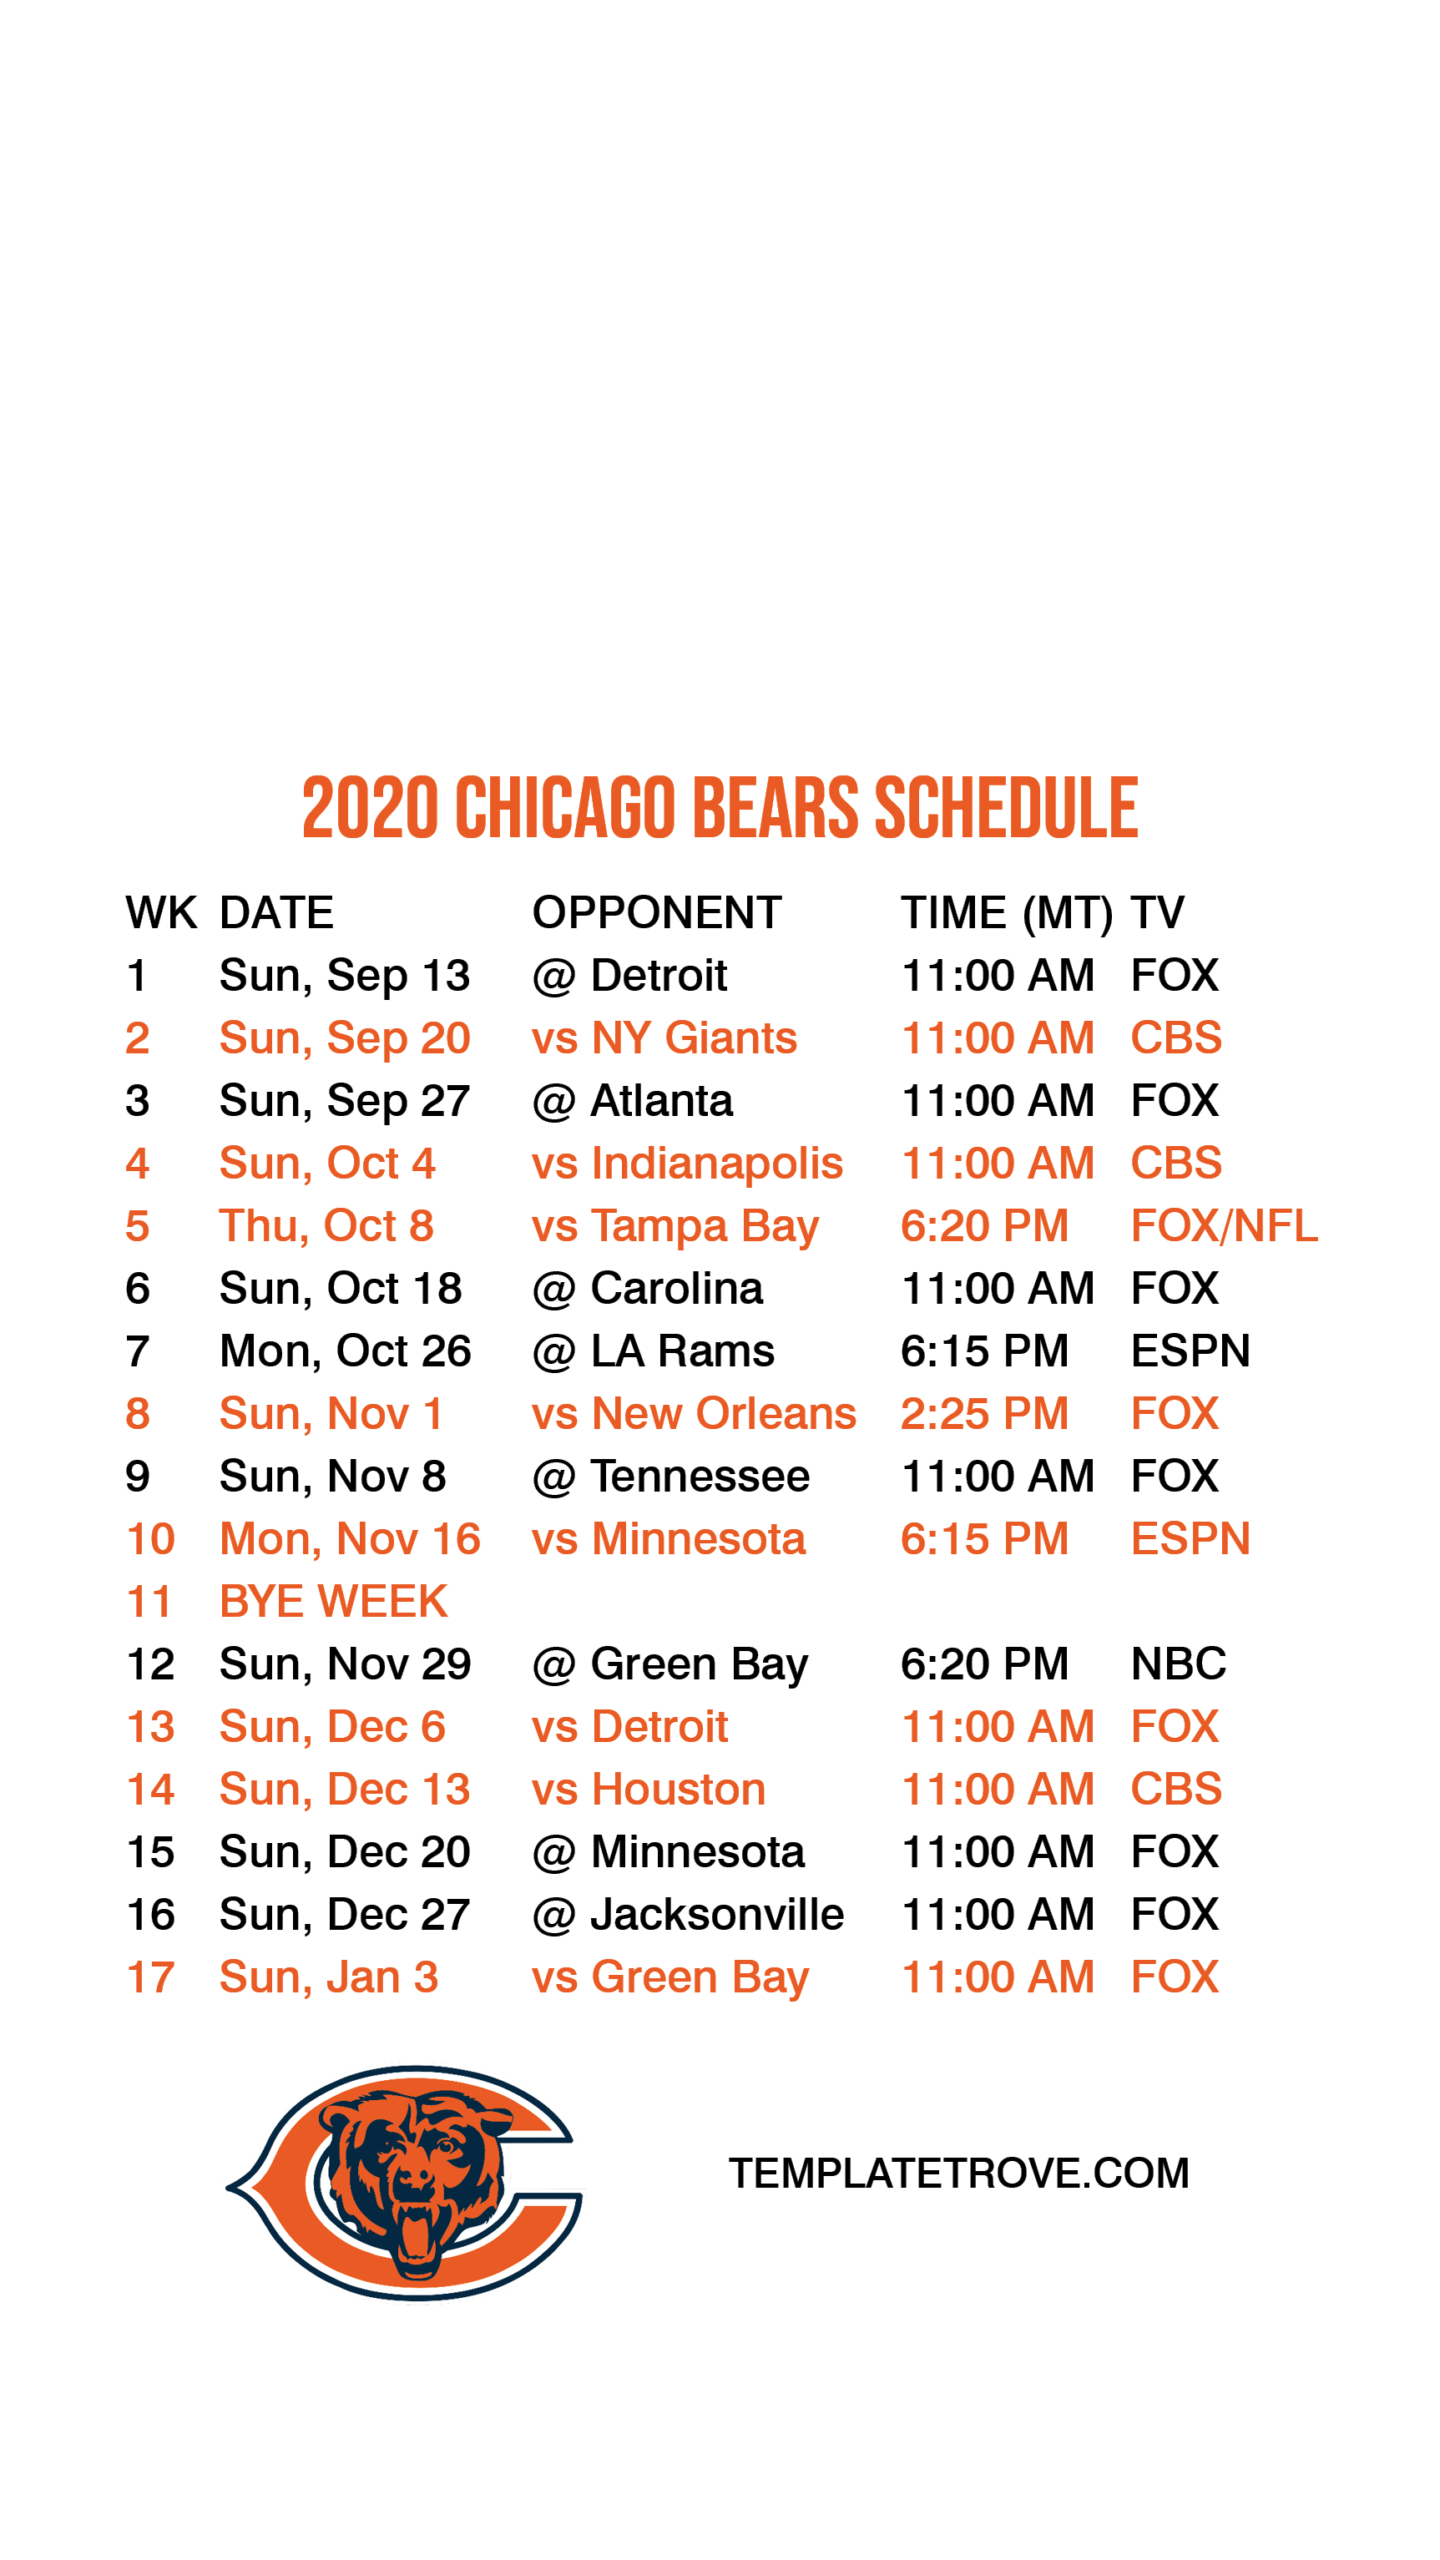 Printable Nfl Schedule For 2021 %] | Calendar Printables with Nfl Printable Schedules 2021